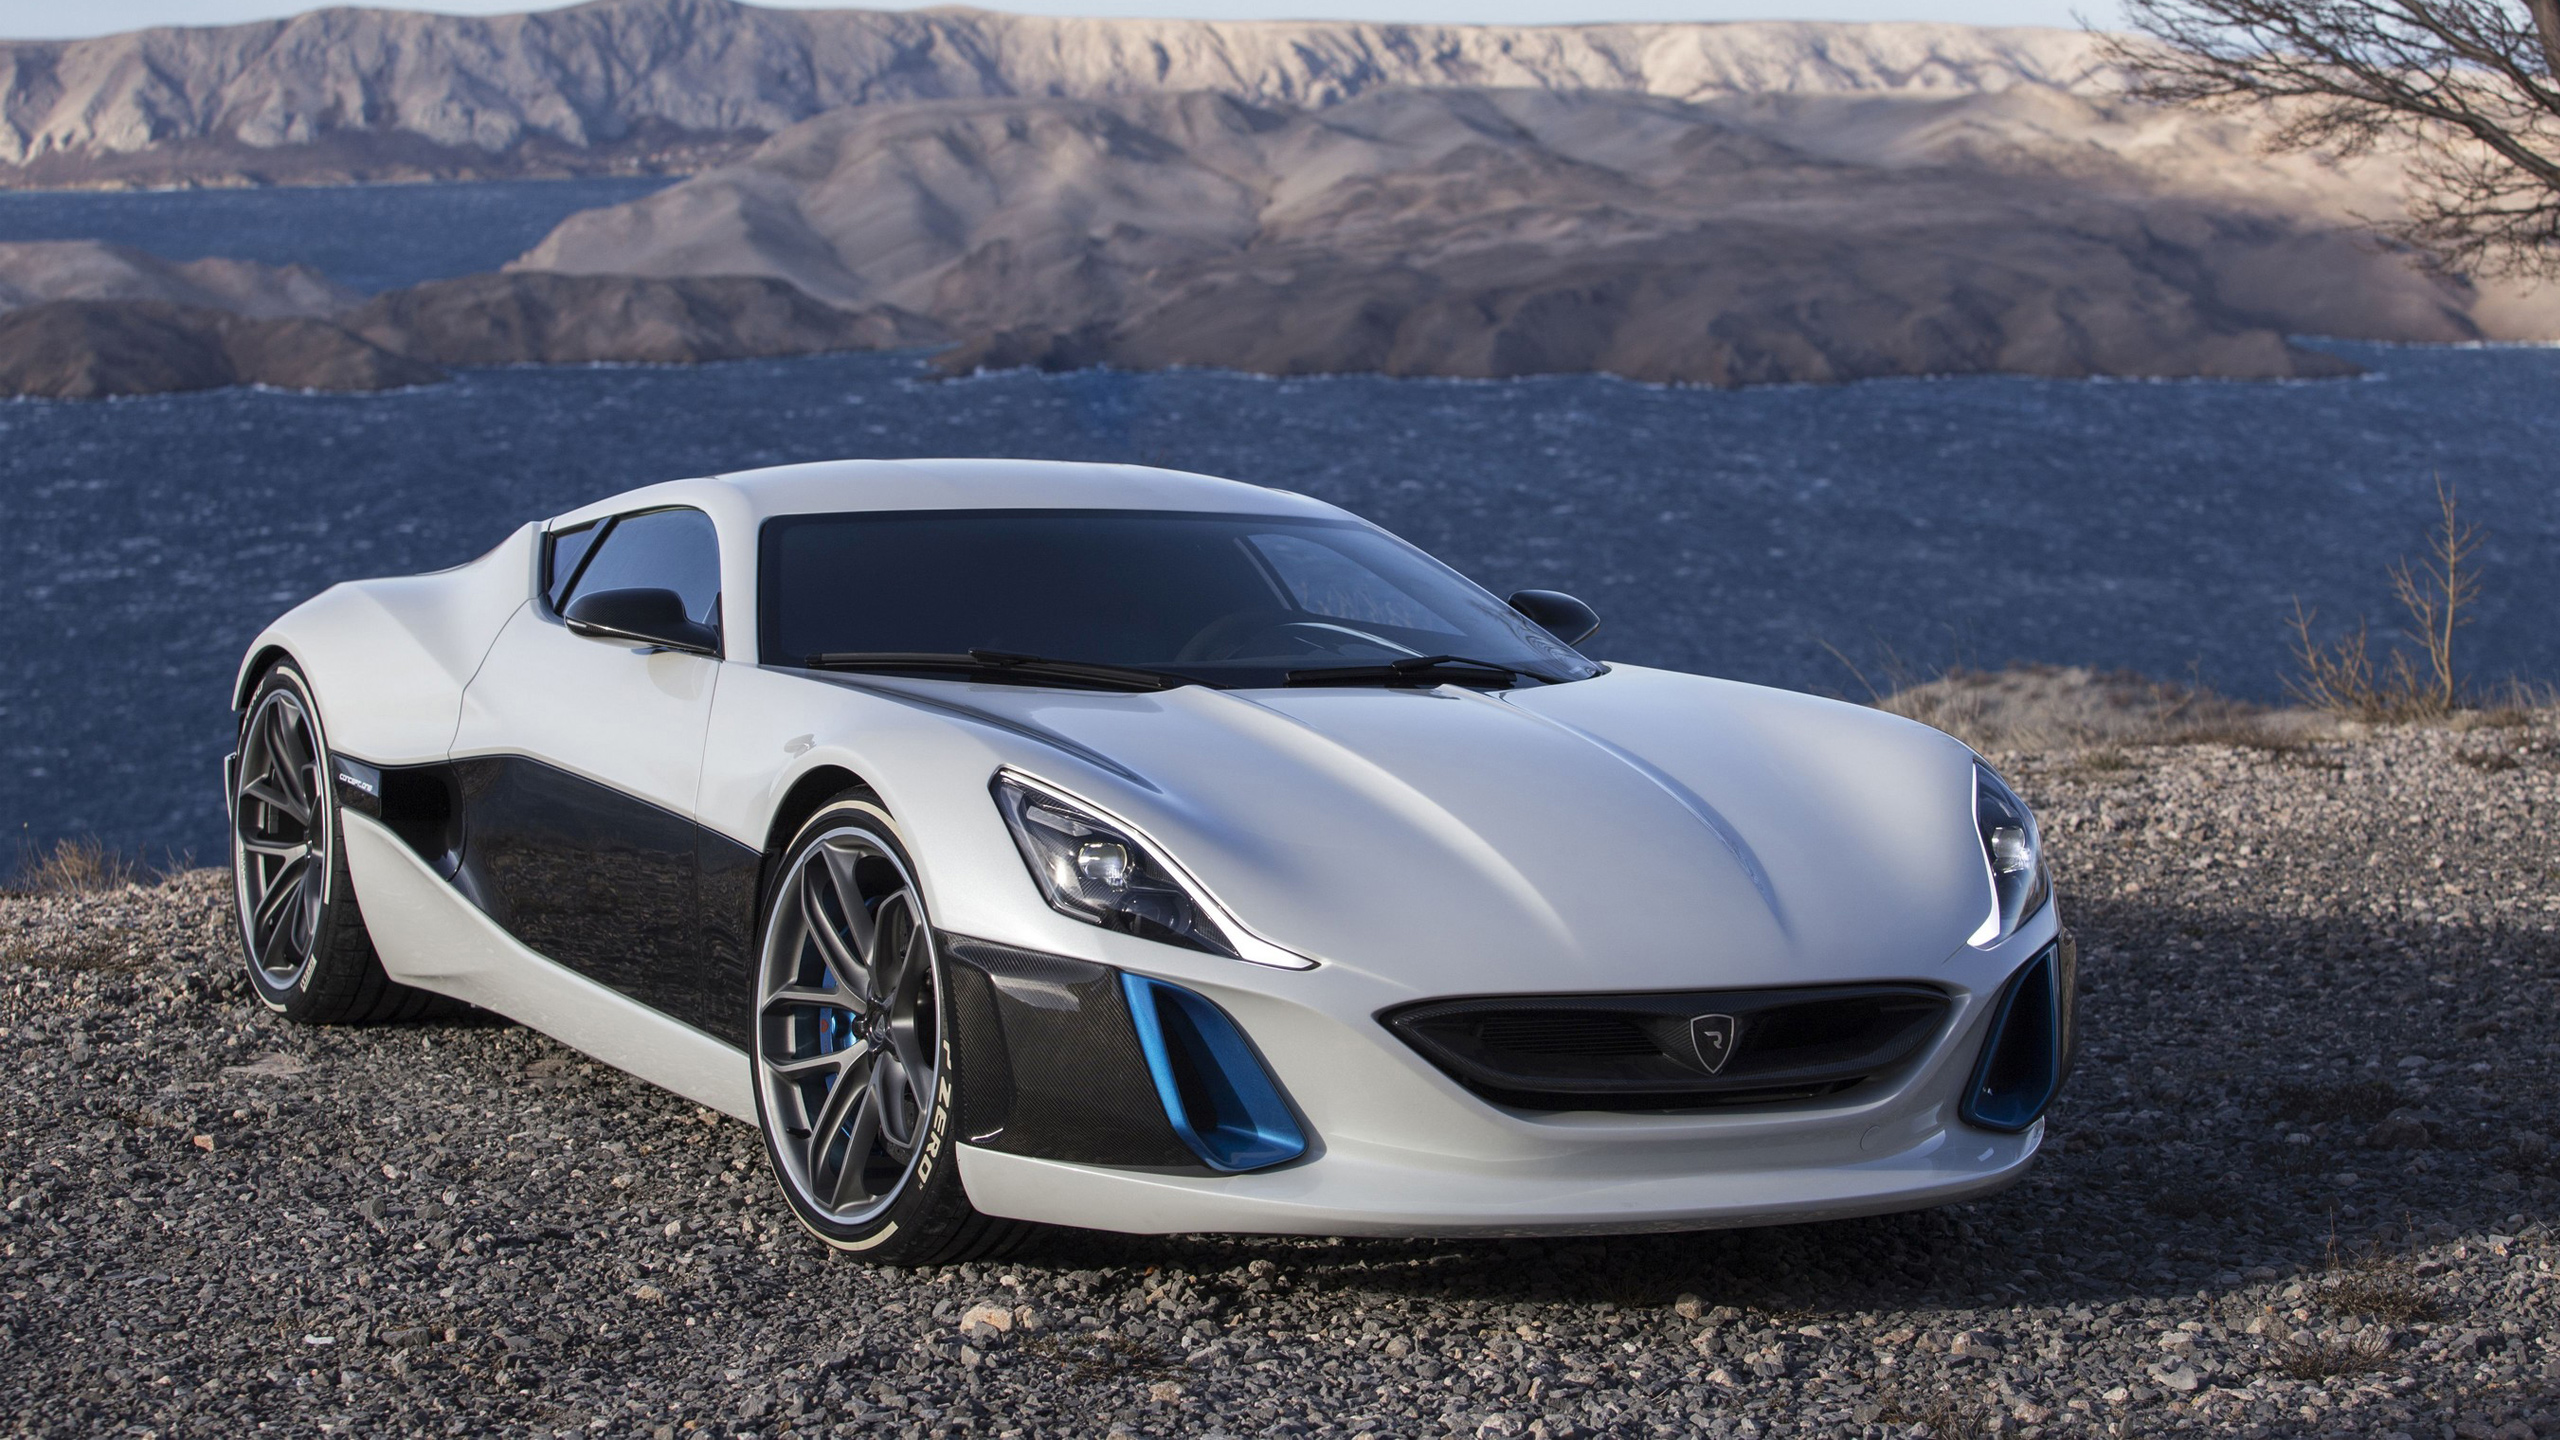 Rimac Concept One 2017 Wallpaper Hd Car Wallpapers Id